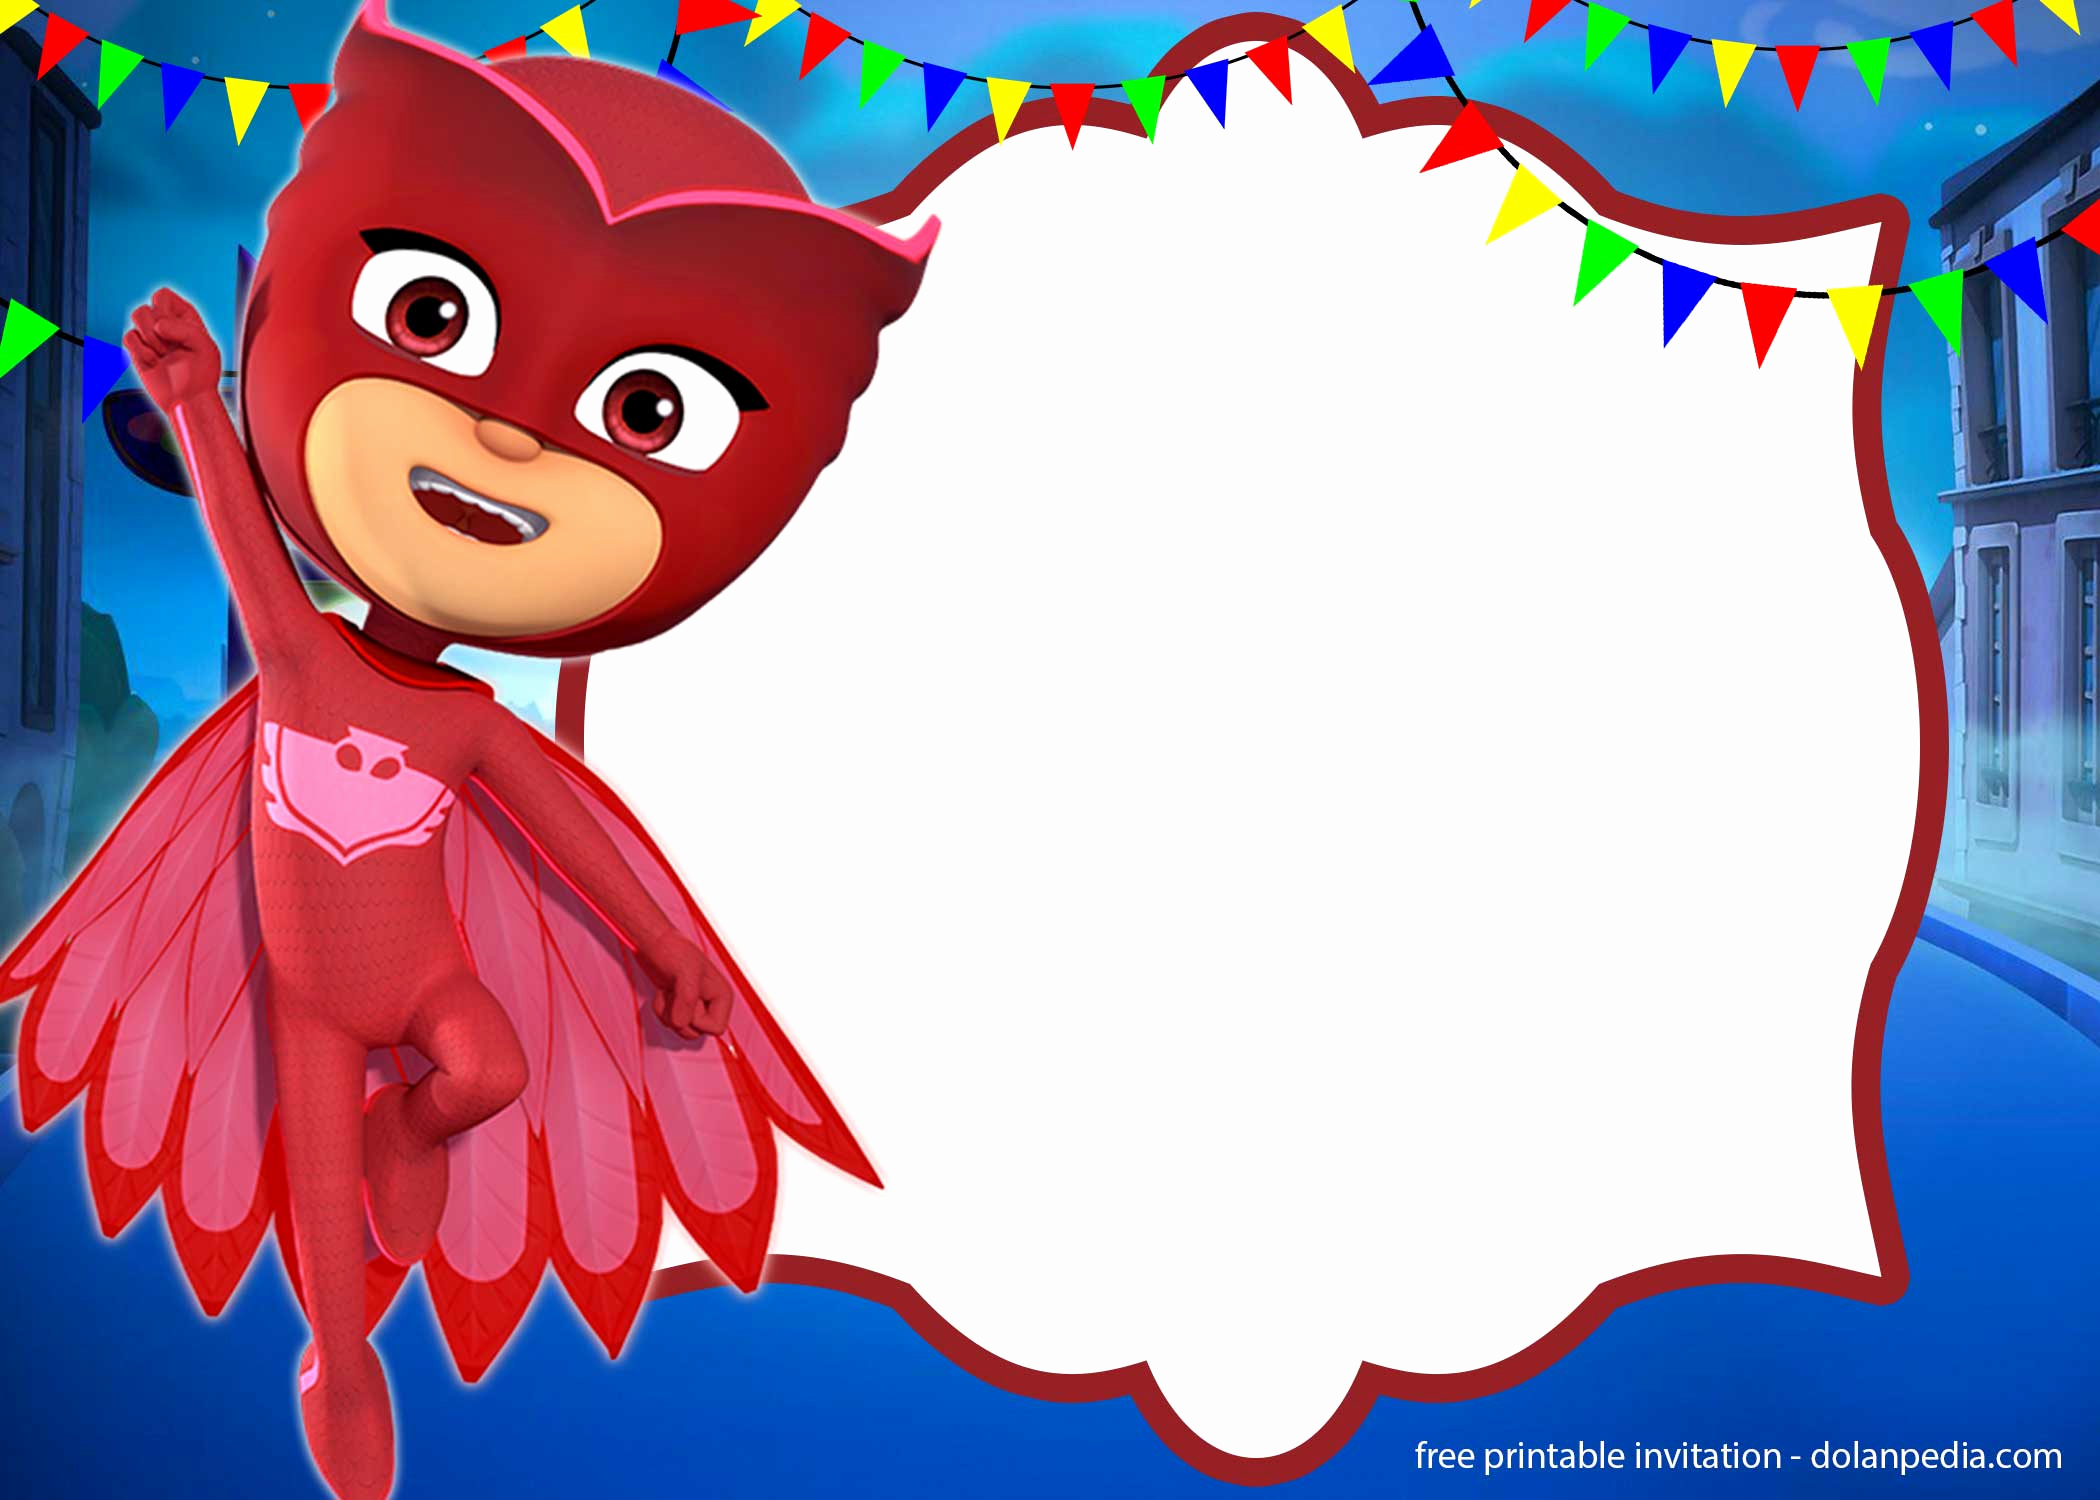 Pj Masks Invitation Template Free Beautiful Free Pj Masks Invitation Templates – Editable and